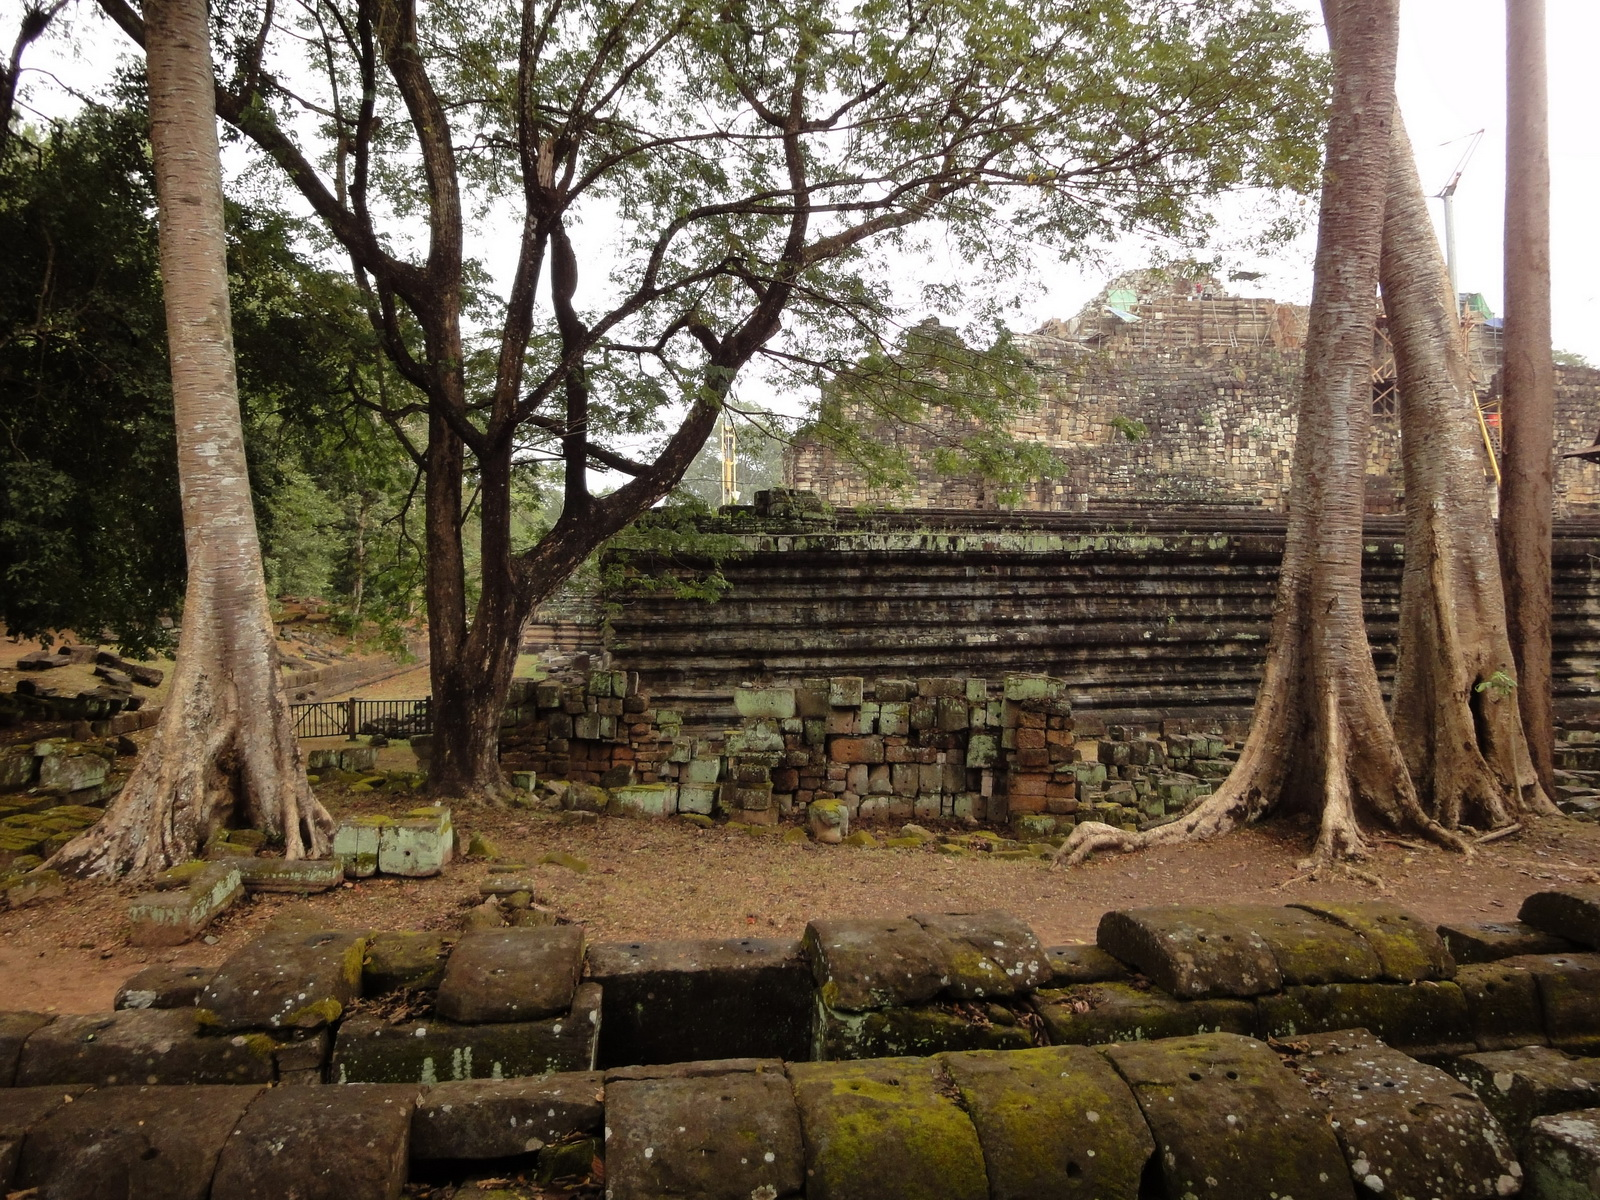 Baphuon temple Khmer style mid 11th century Angkor 01